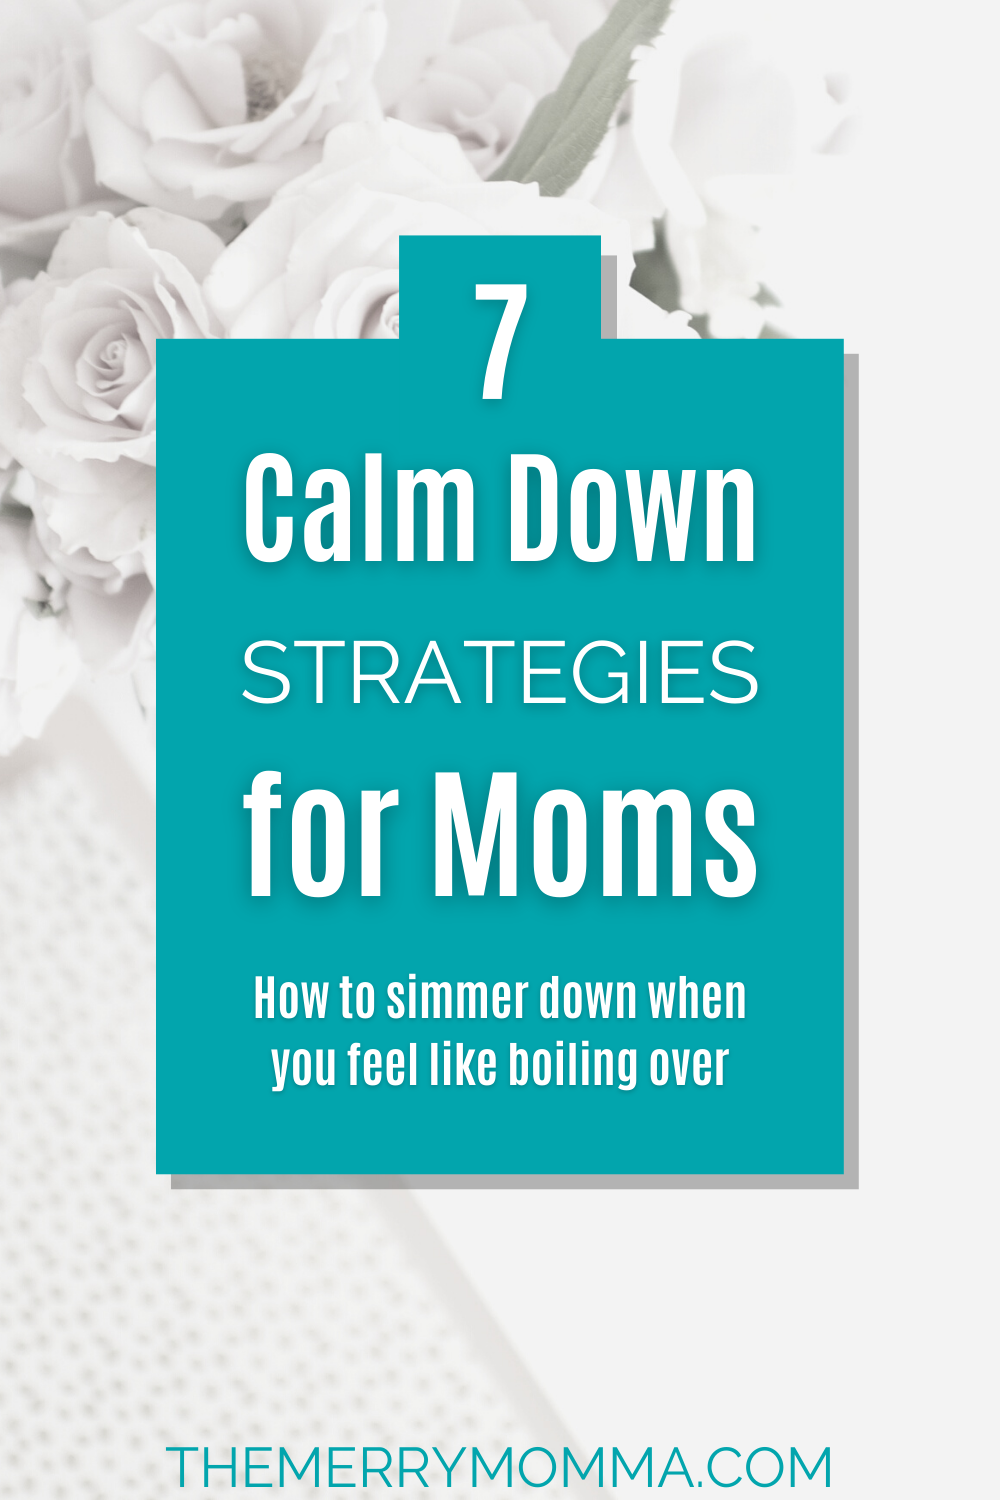 7 Calm Down Strategies for Moms PIN